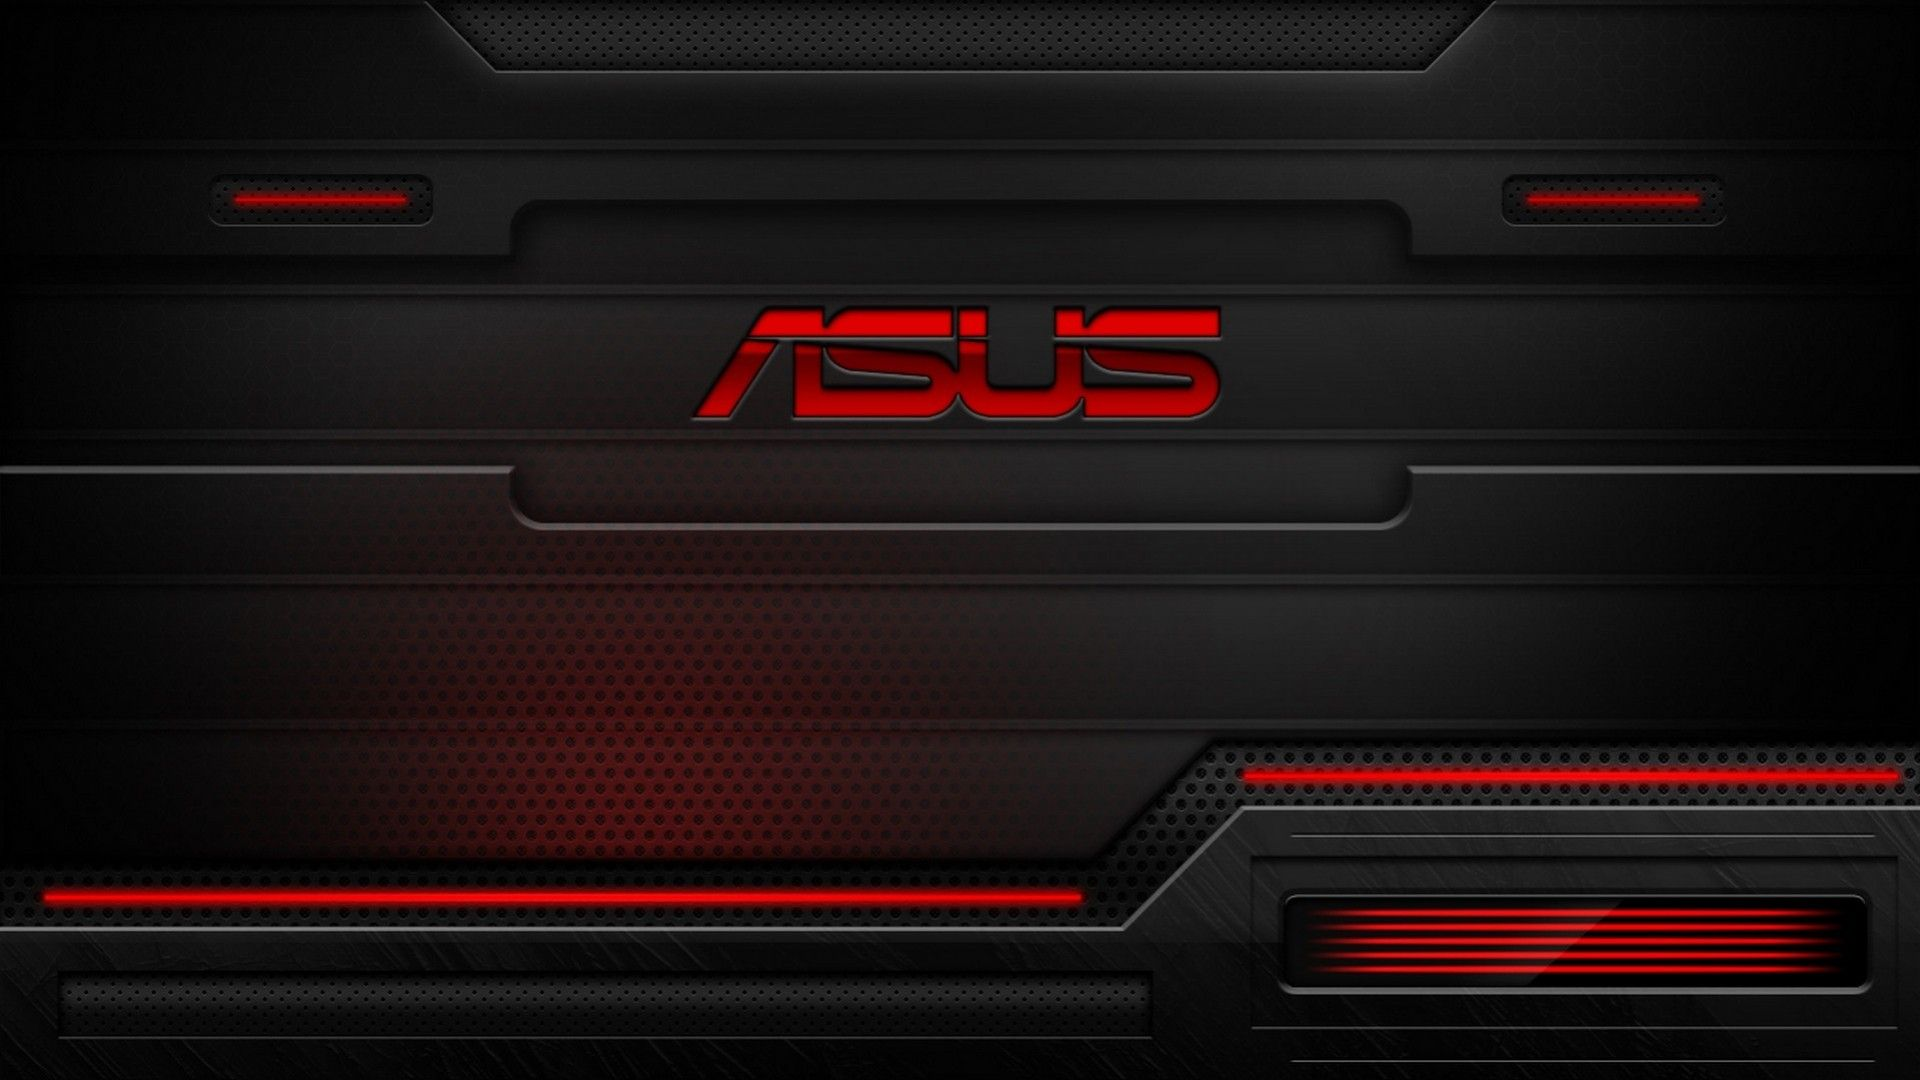 Awesome 3d Wallpapers Free Download Asus Wallpapers Hd Pixelstalk Net